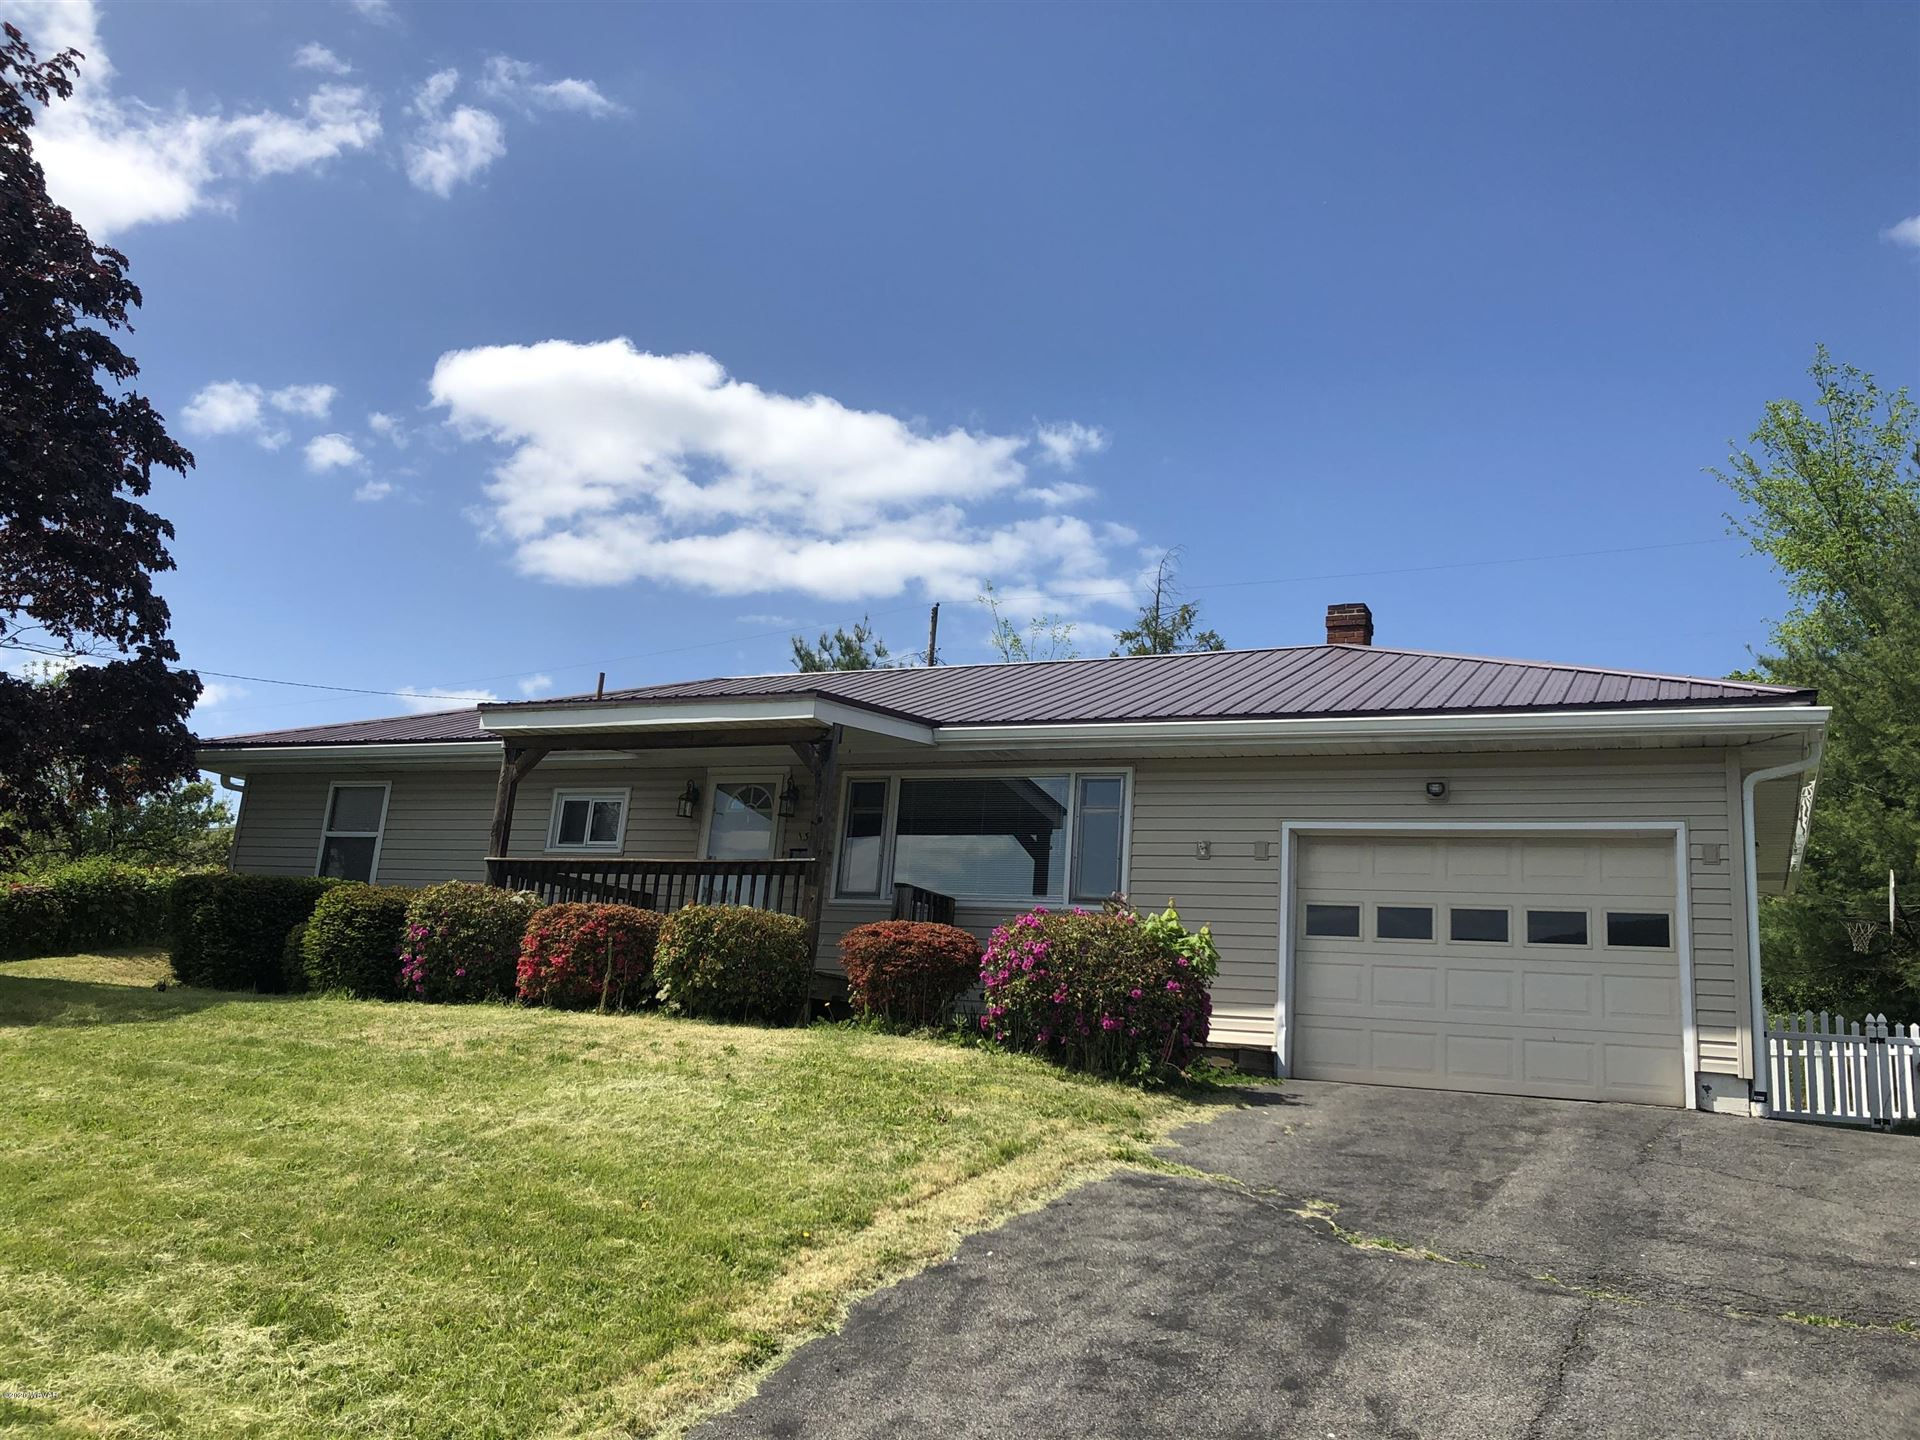 1317 S HILLVIEW STREET, Lock Haven, PA 17745 - #: WB-90280